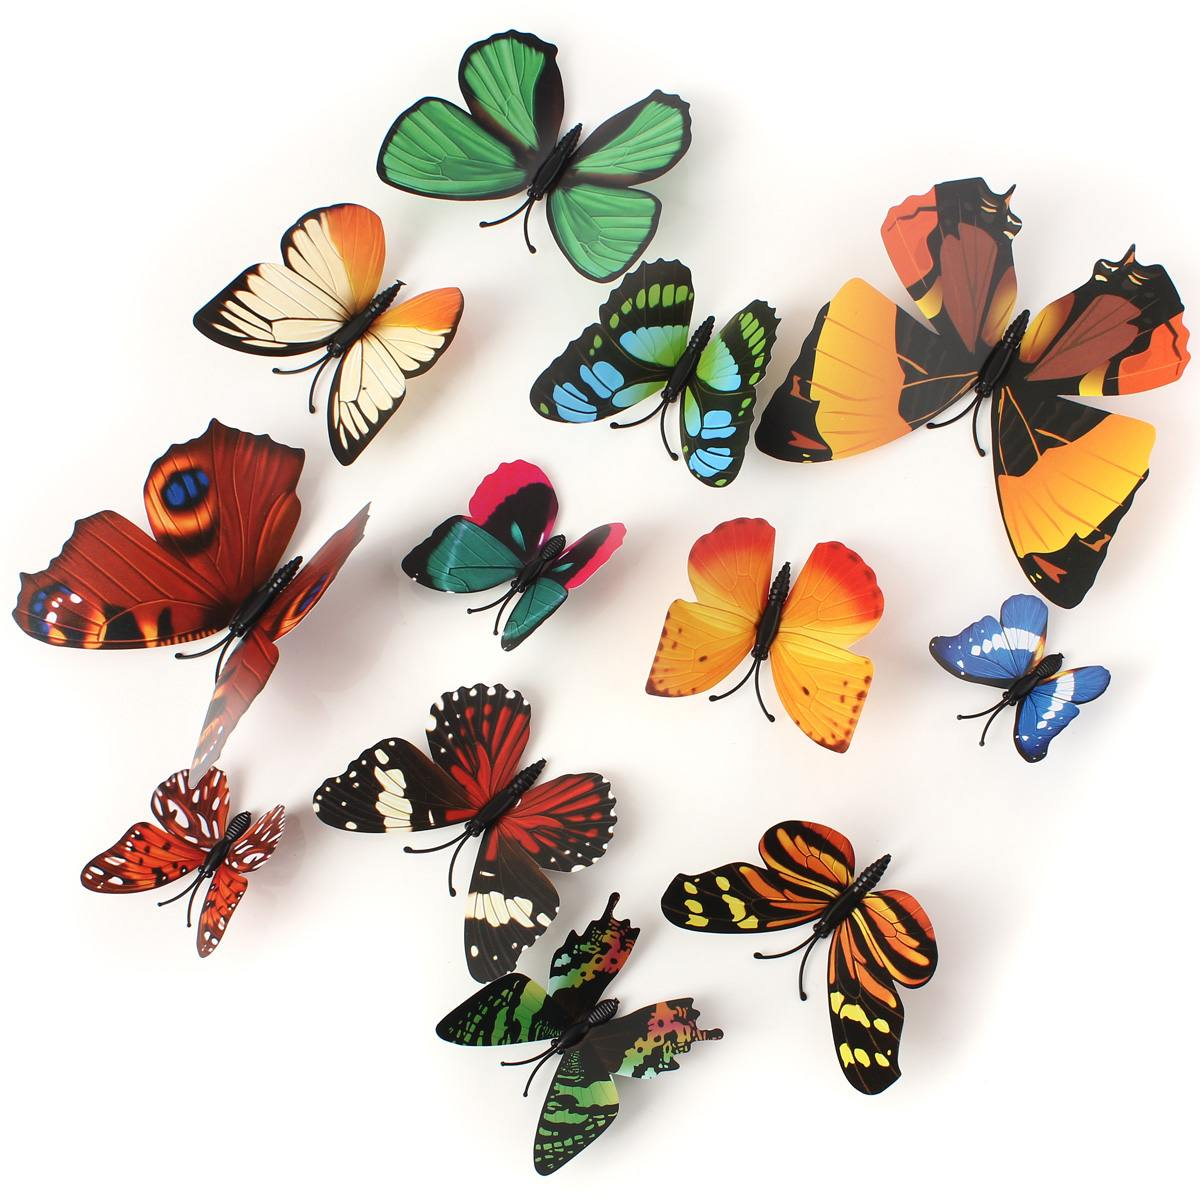 12PCS/Lot Artificial Butterfly Garden Decorations Simulation Butterfly Stakes Yard Plant Lawn Decor Fake Butterefly Random Color